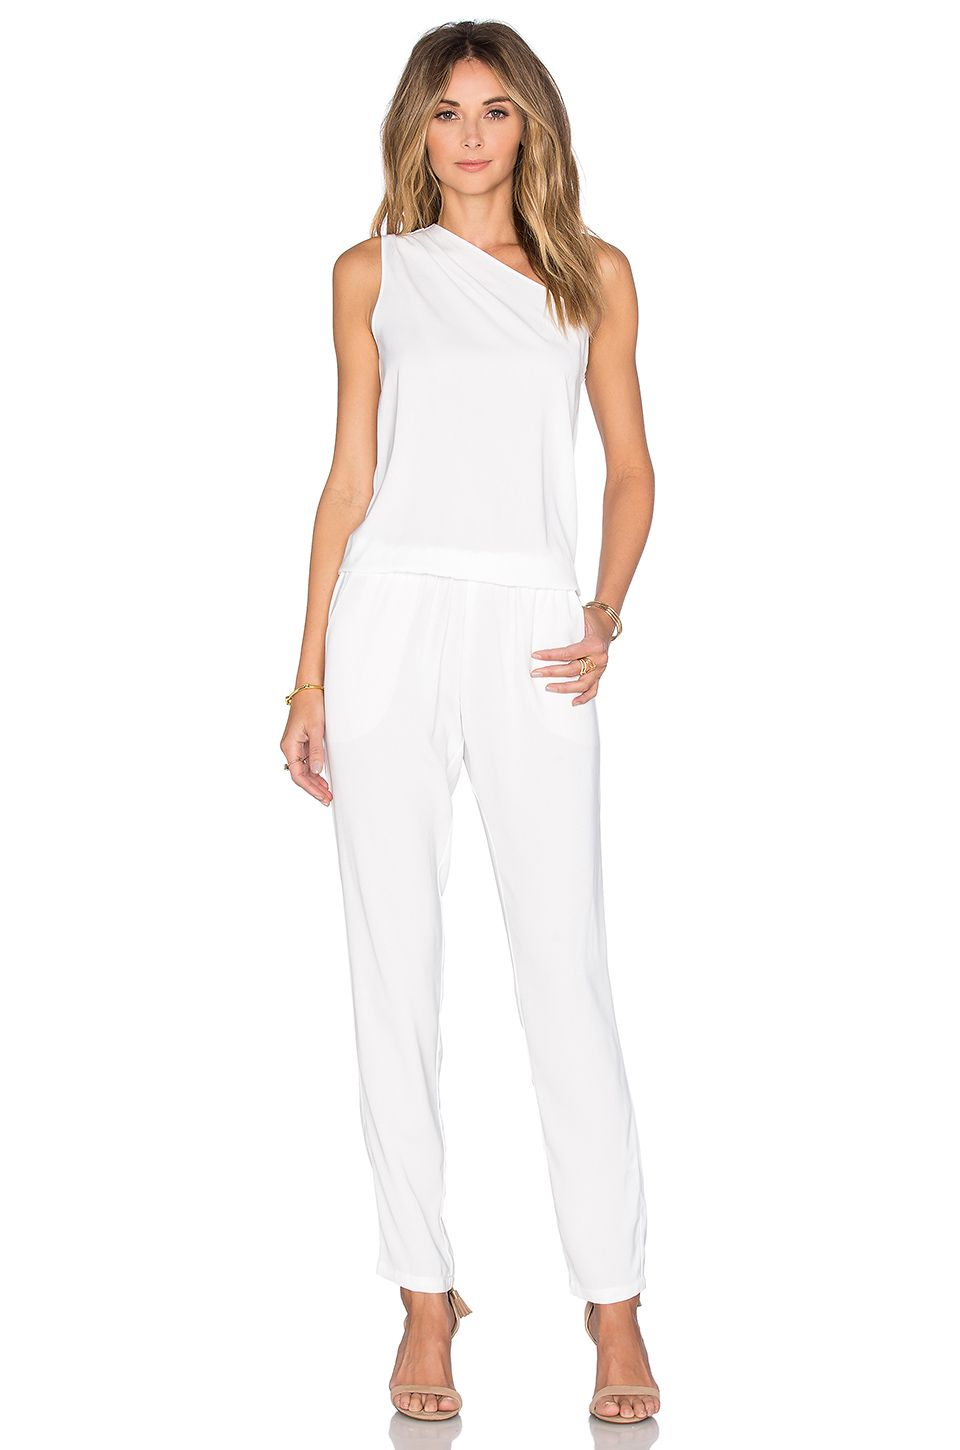 8280a563eaa0 Bobi BLACK Georgette One Shoulder Jumpsuit in White   Clothes   One ...